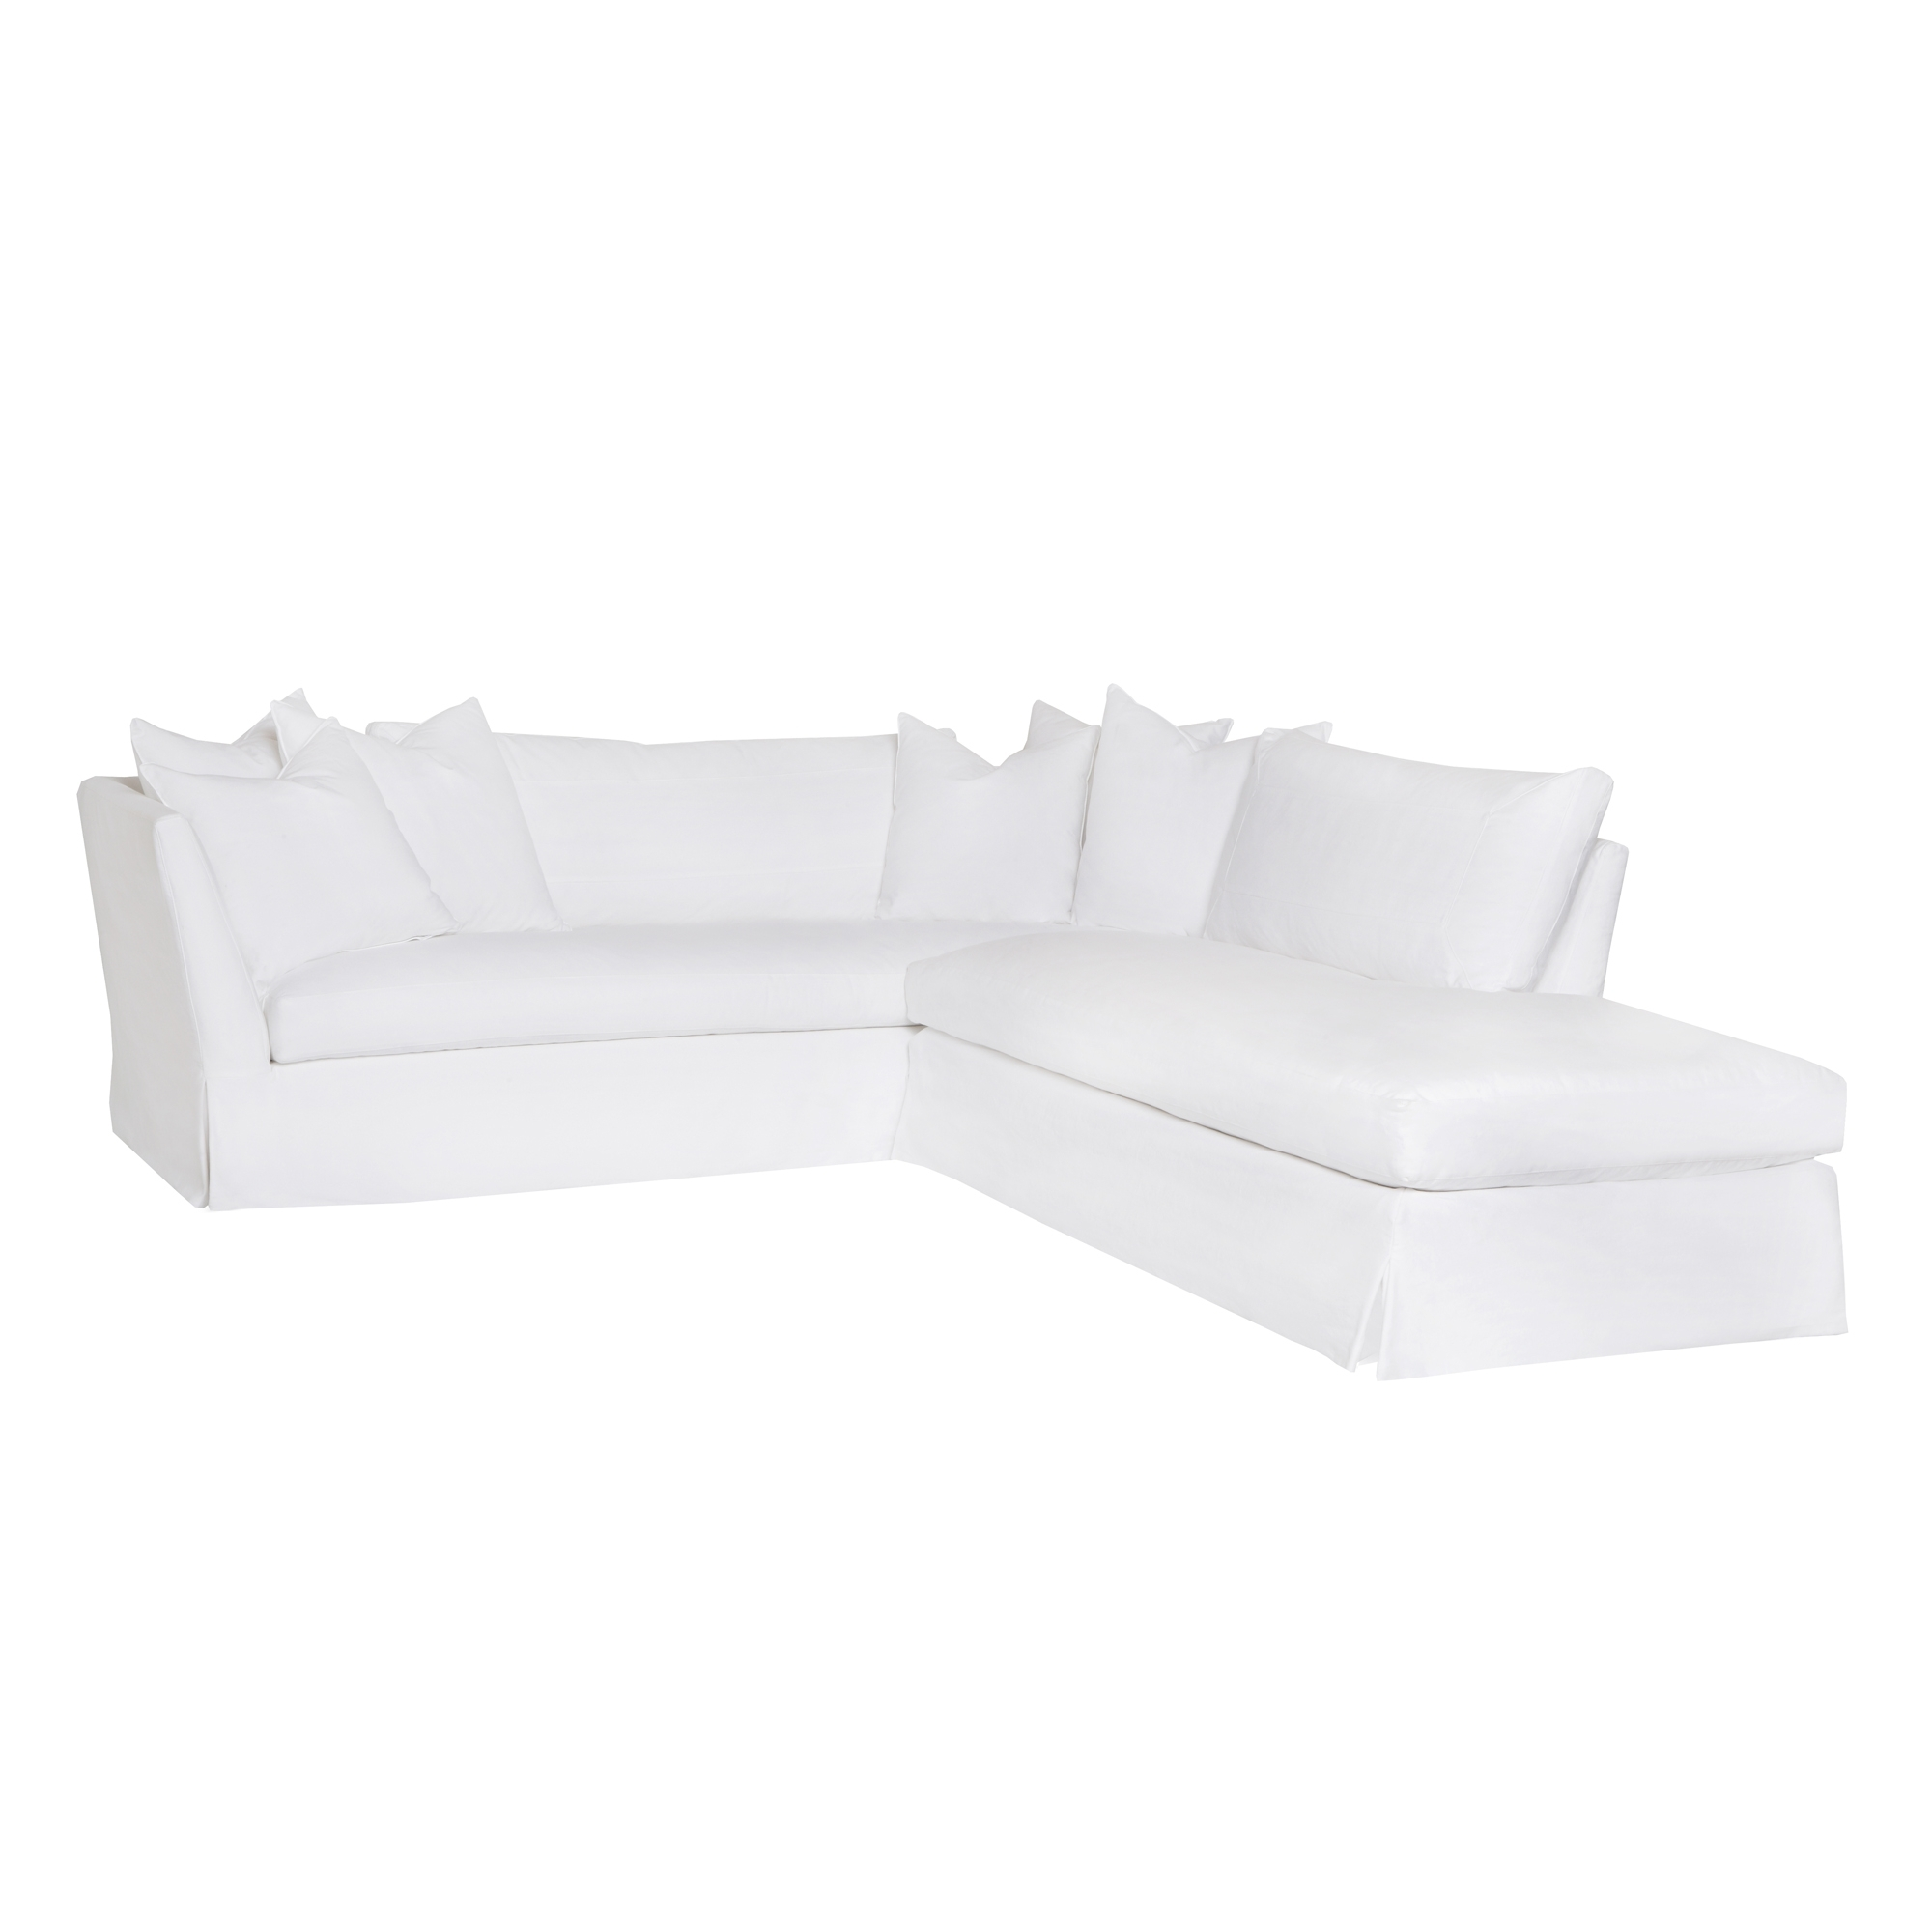 Villa Vici Contemporary Furniture Store And Pertaining To Favorite New Orleans Sectional Sofas (View 13 of 15)